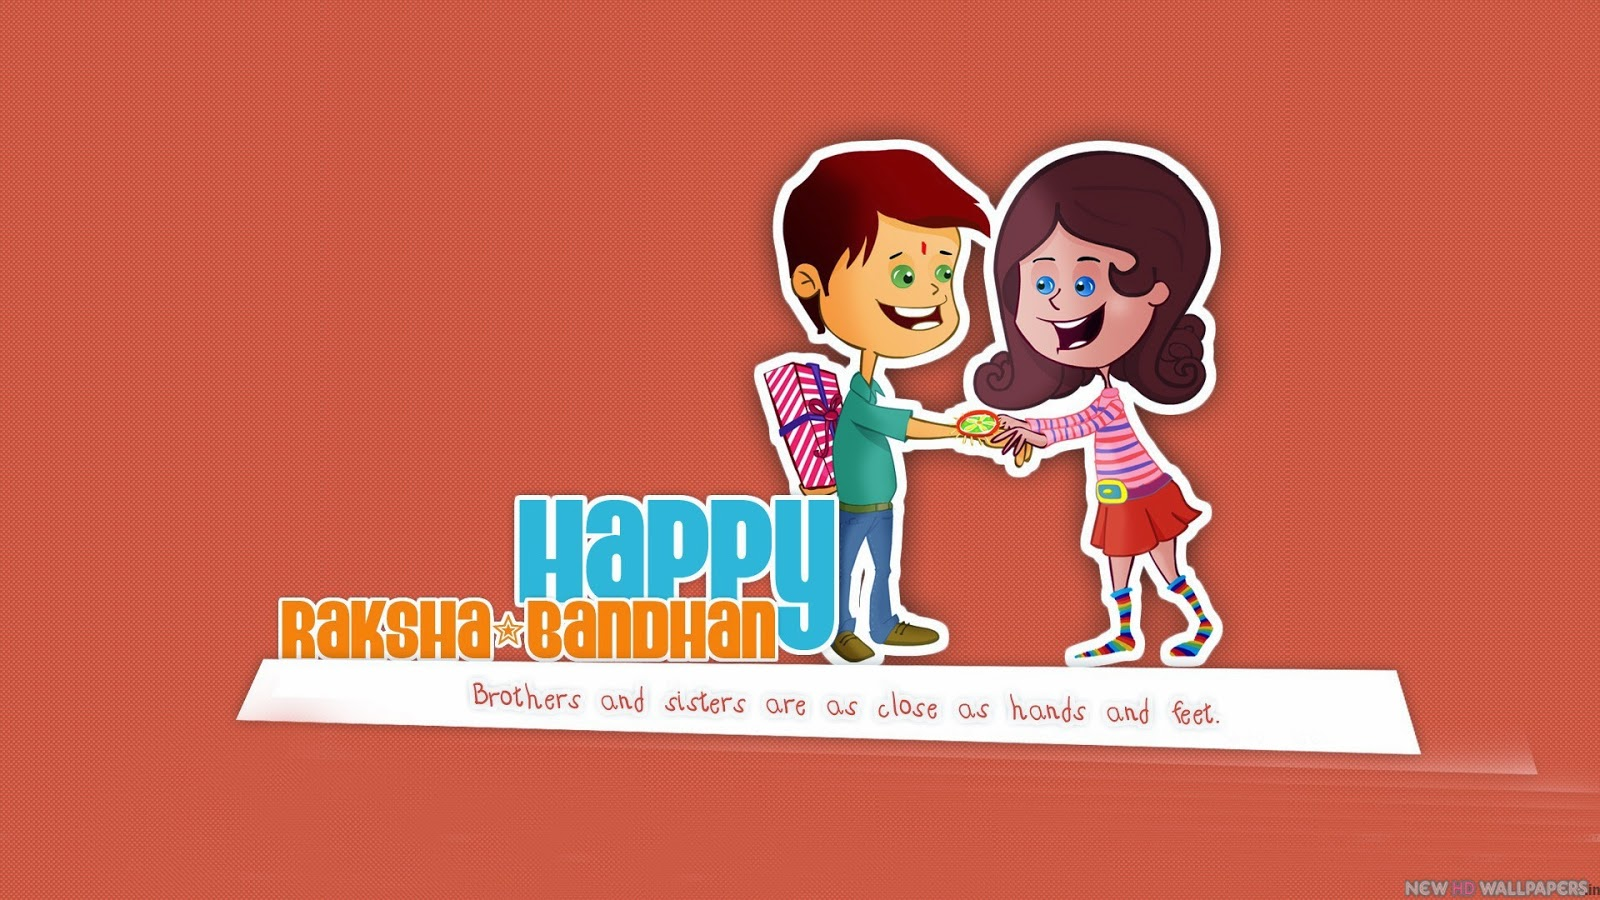 raksha bandhan sms messages quotes and many more rakhi rakhi are one of the best among all options that create a special aura on the festival this web page consists of various